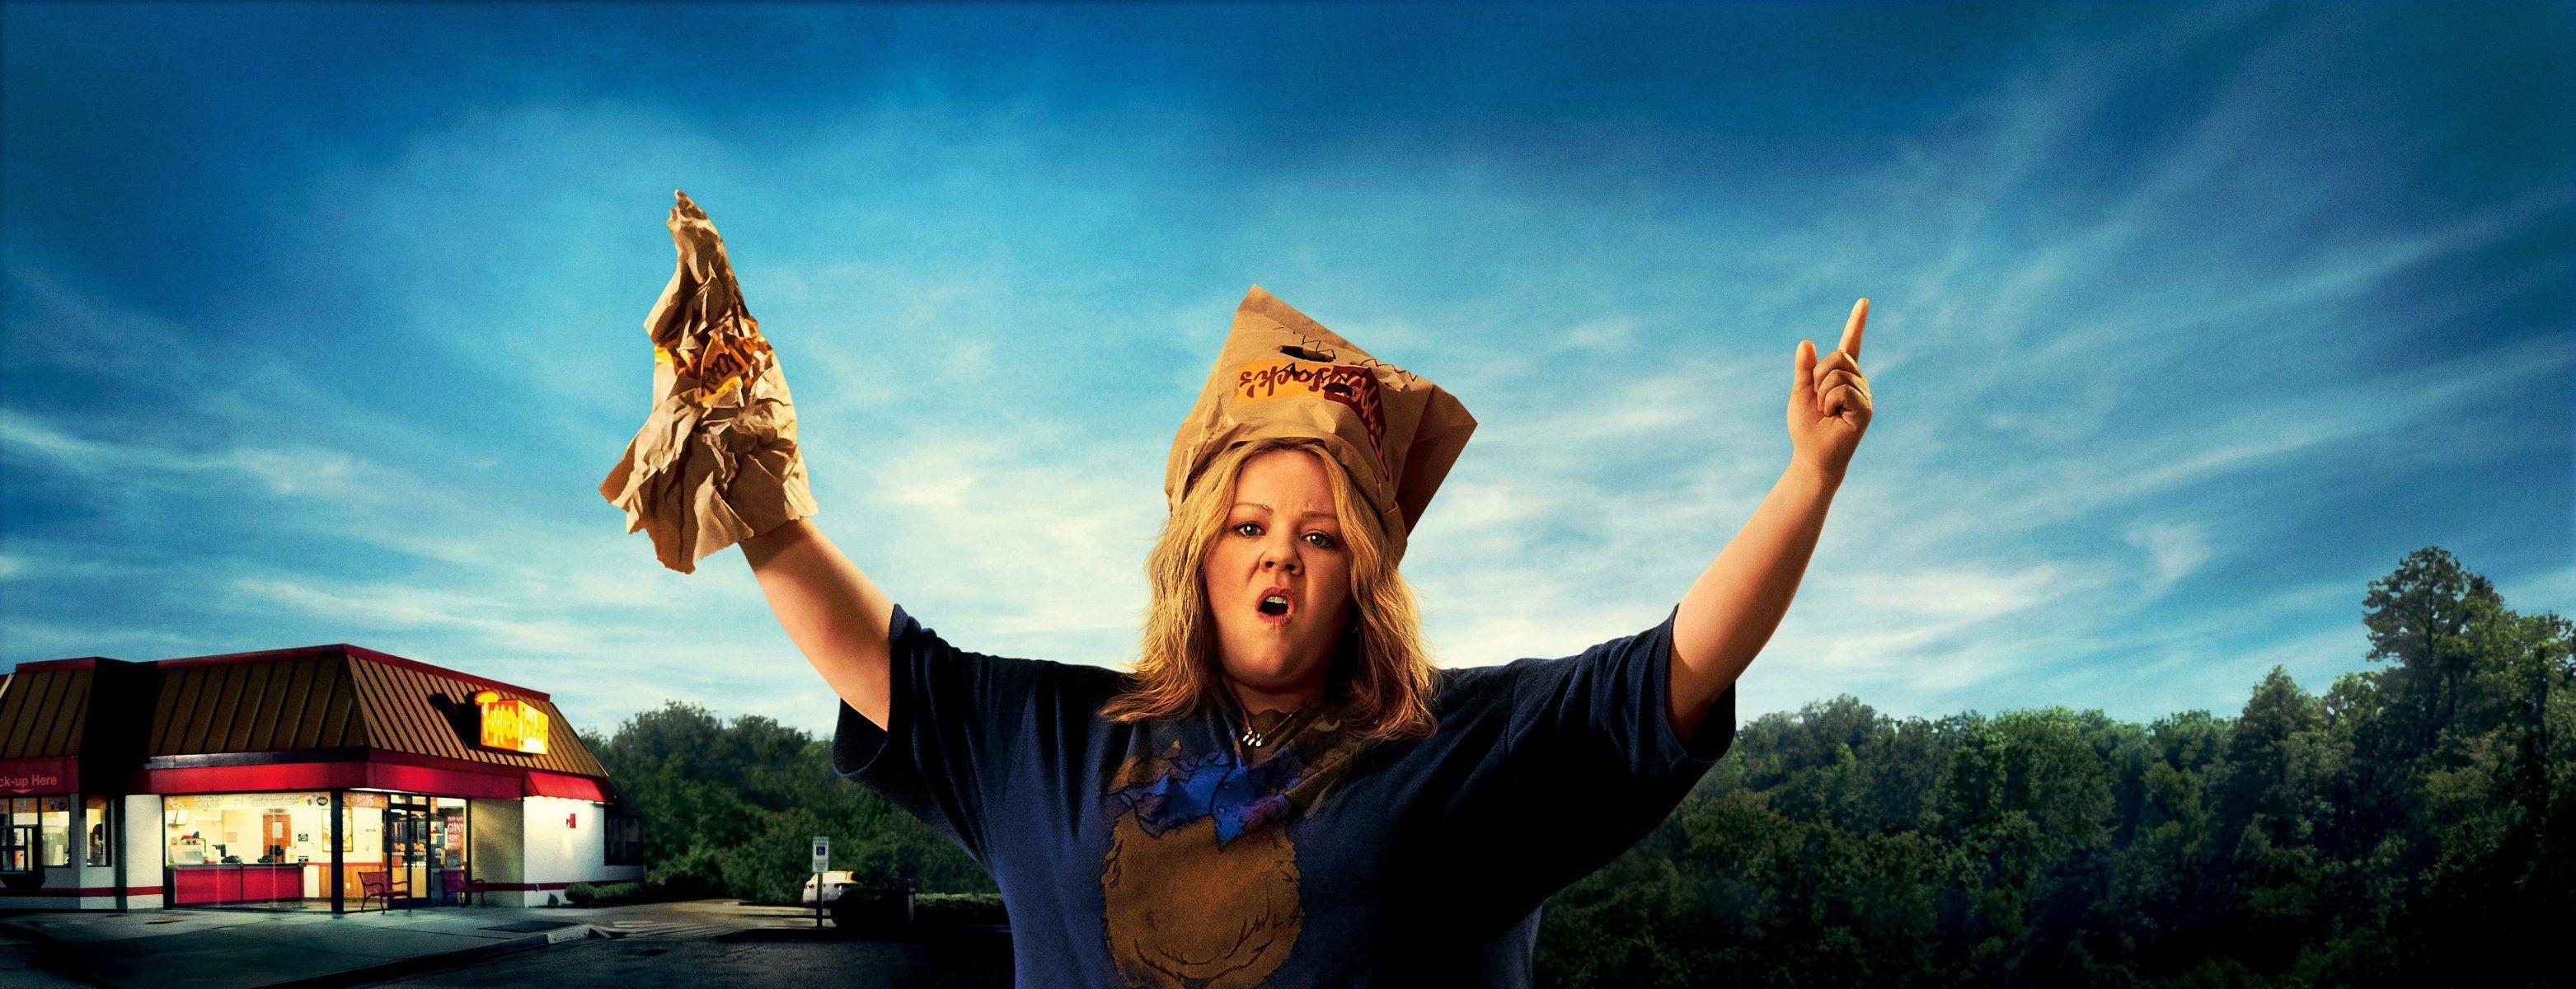 tammy movie film melissa mccarthy comedy action adventure street ...